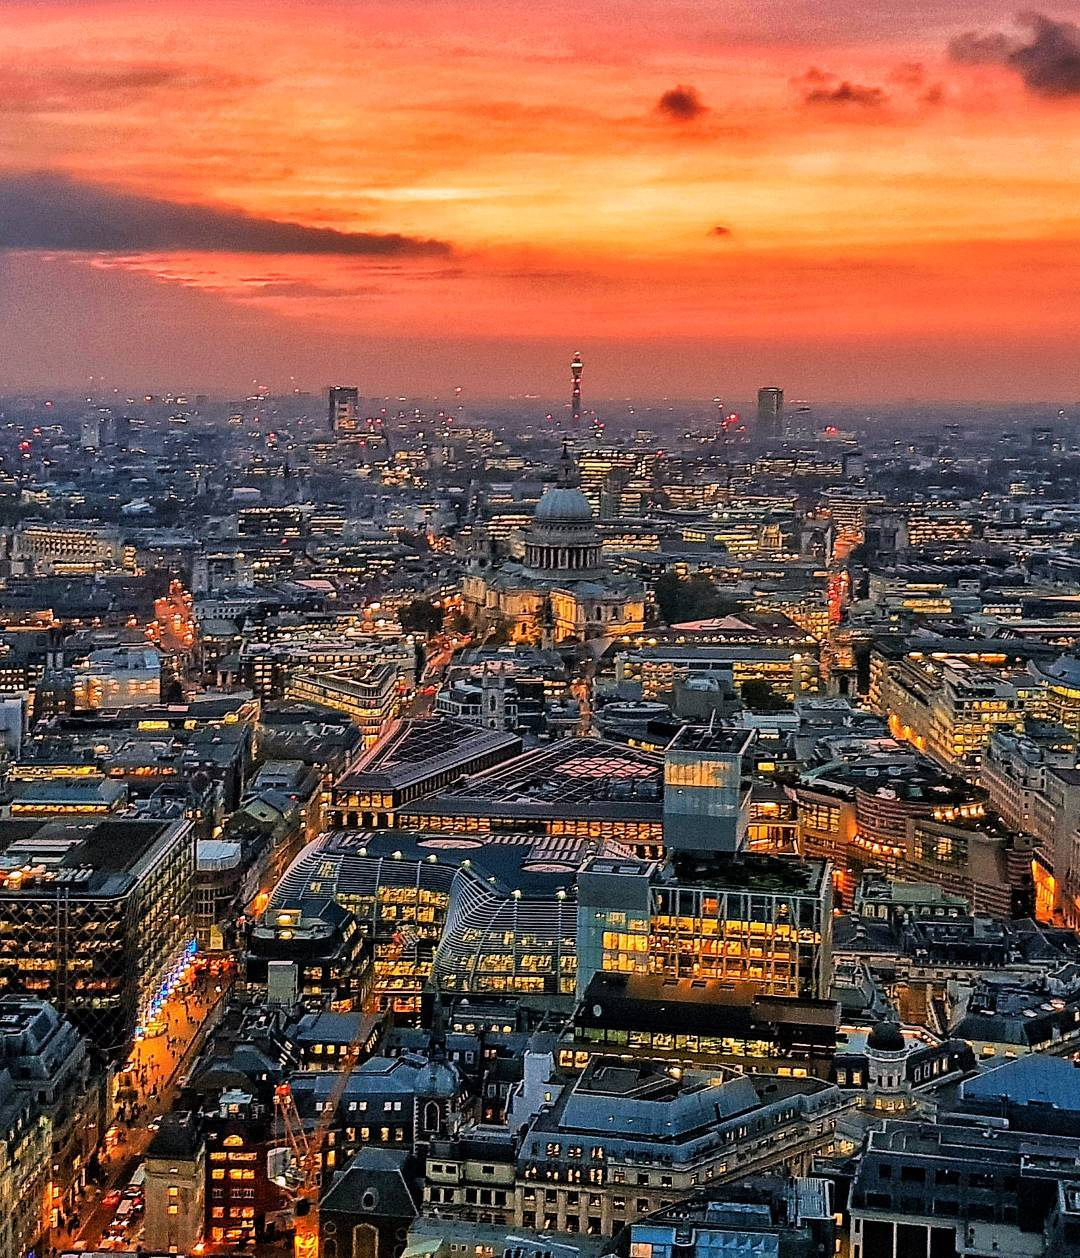 London sunset photograph - satishkguddu